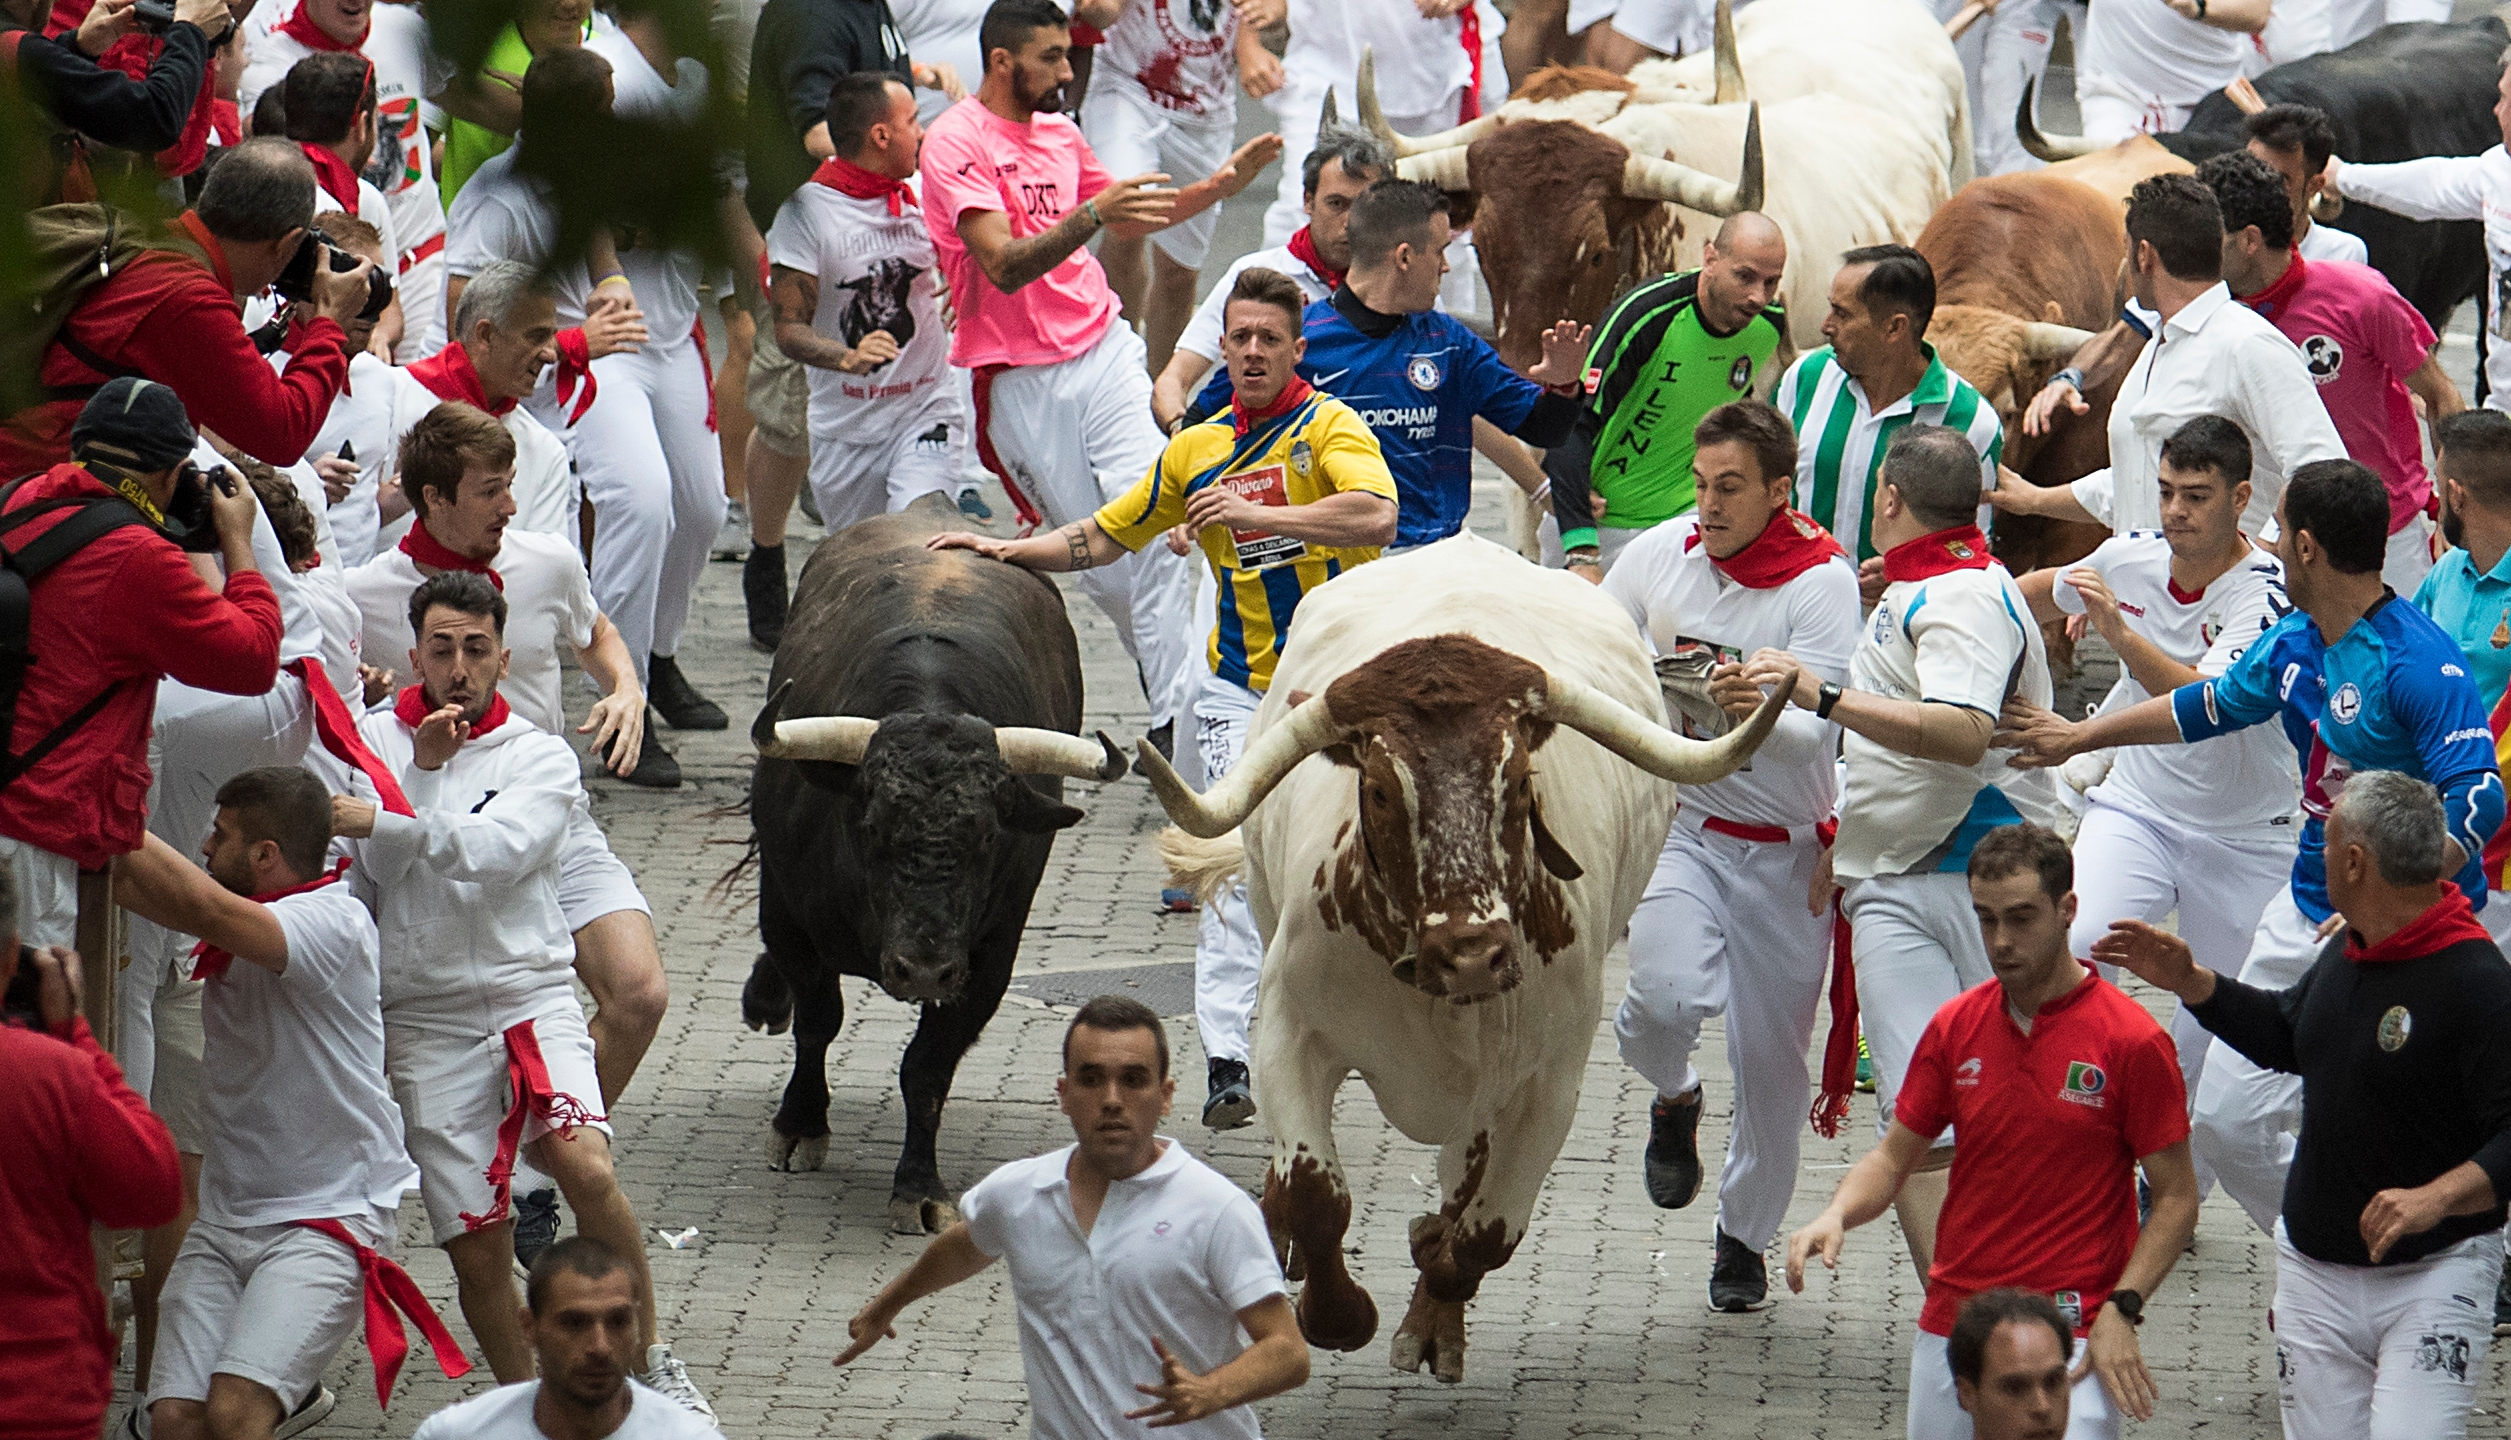 Participants run with fighting bulls during the San Fermin festival in Pamplona, northern Spain, on July 7, 2019. (Credit: Jaime Reina/AFP/Getty Images)